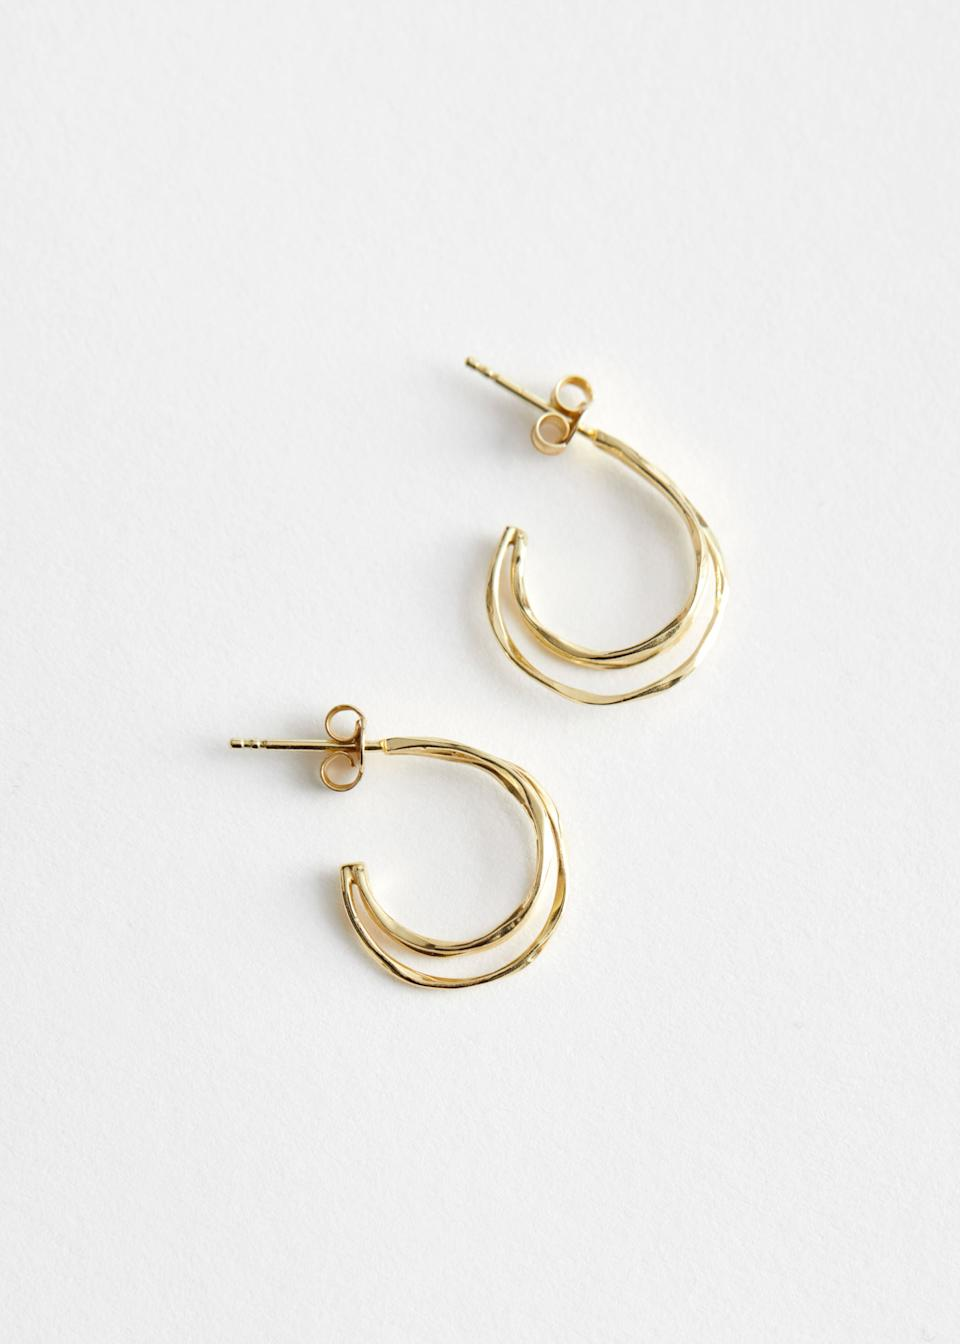 "<br><br><strong>& Other Stories</strong> Sterling Silver Twisted Hoop Earrings, $, available at <a href=""https://go.skimresources.com/?id=30283X879131&url=https%3A%2F%2Fwww.stories.com%2Fen_usd%2Fjewellery%2Fearrings%2Fhoops%2Fproduct.sterling-silver-twisted-hoop-earrings-gold.0842789001.html"" rel=""nofollow noopener"" target=""_blank"" data-ylk=""slk:& Other Stories"" class=""link rapid-noclick-resp"">& Other Stories</a>"